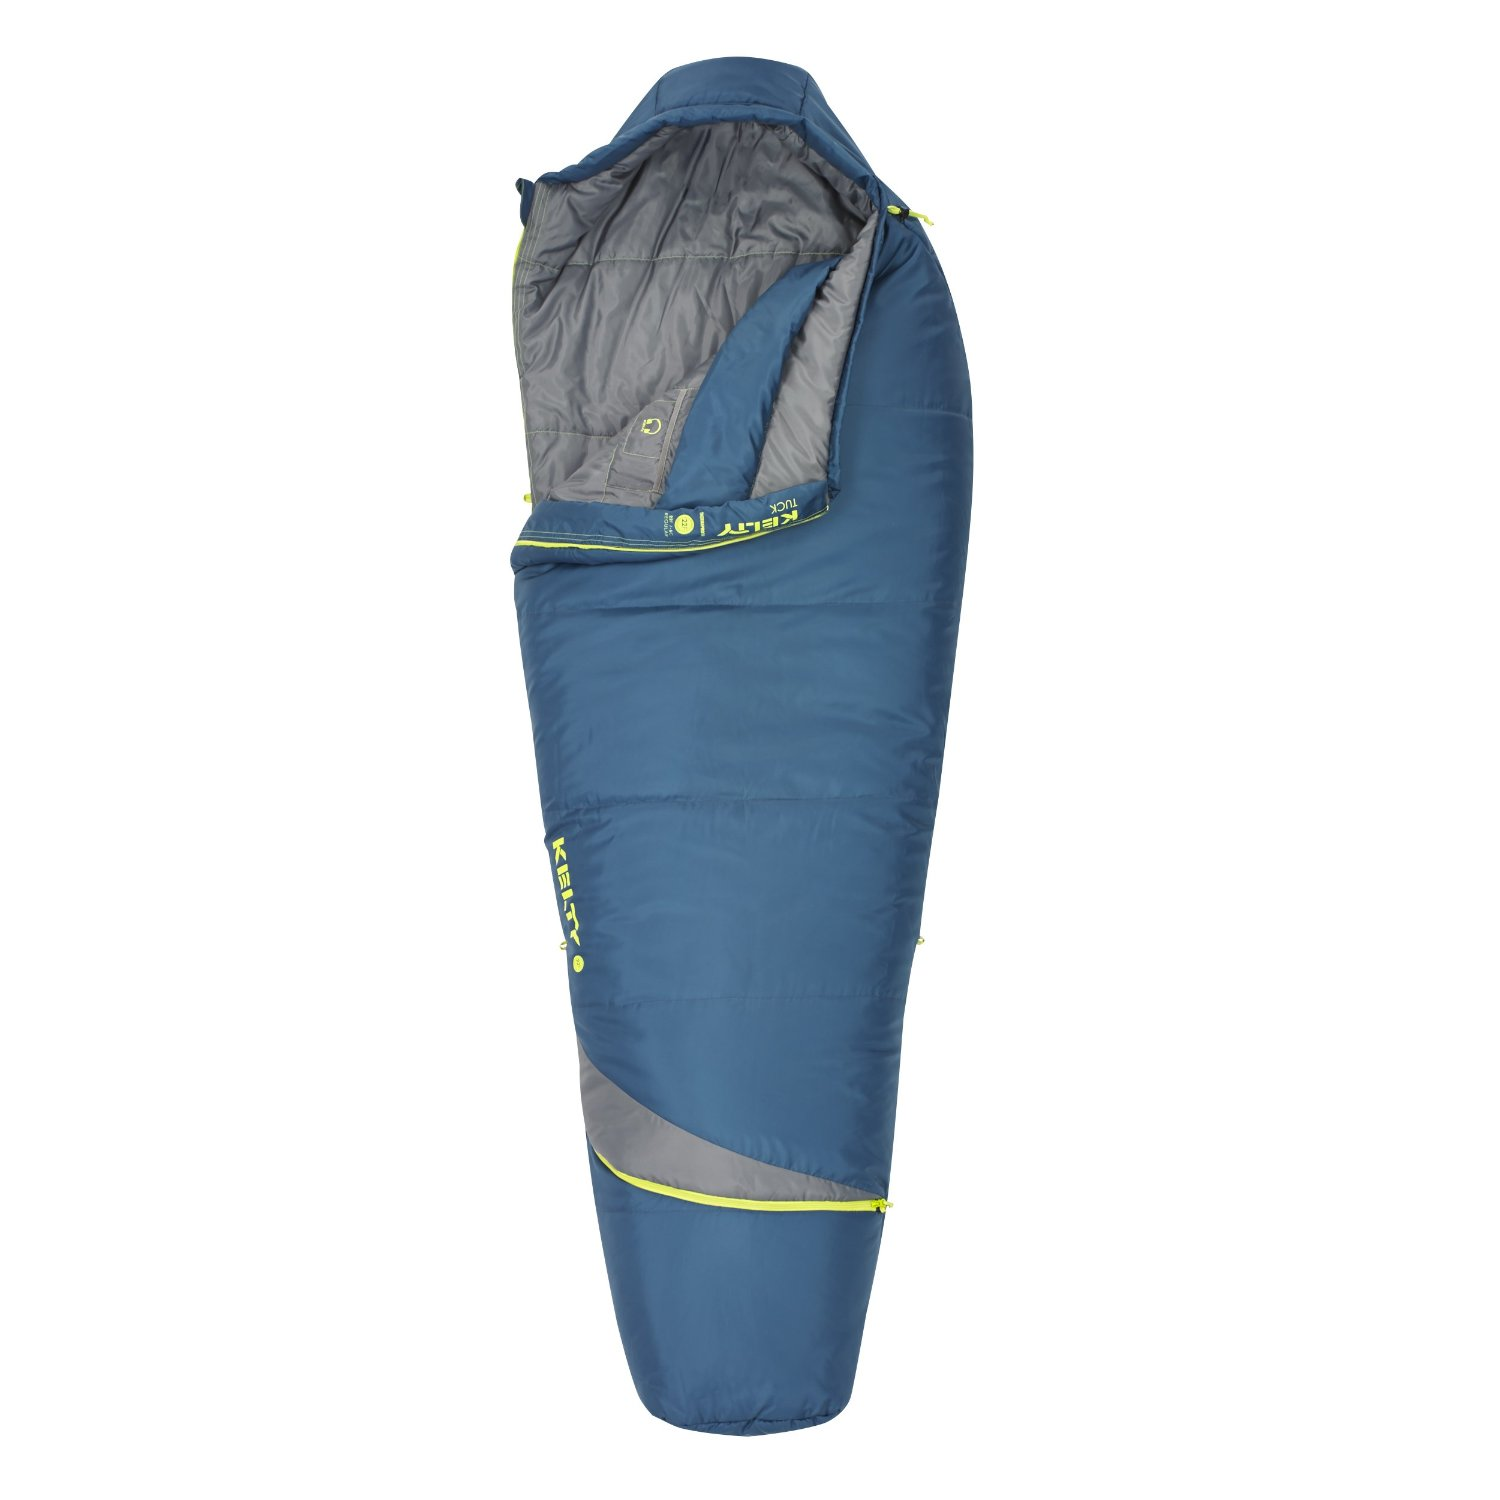 Kelty Tuck 22 Sleeping Bag for Camping